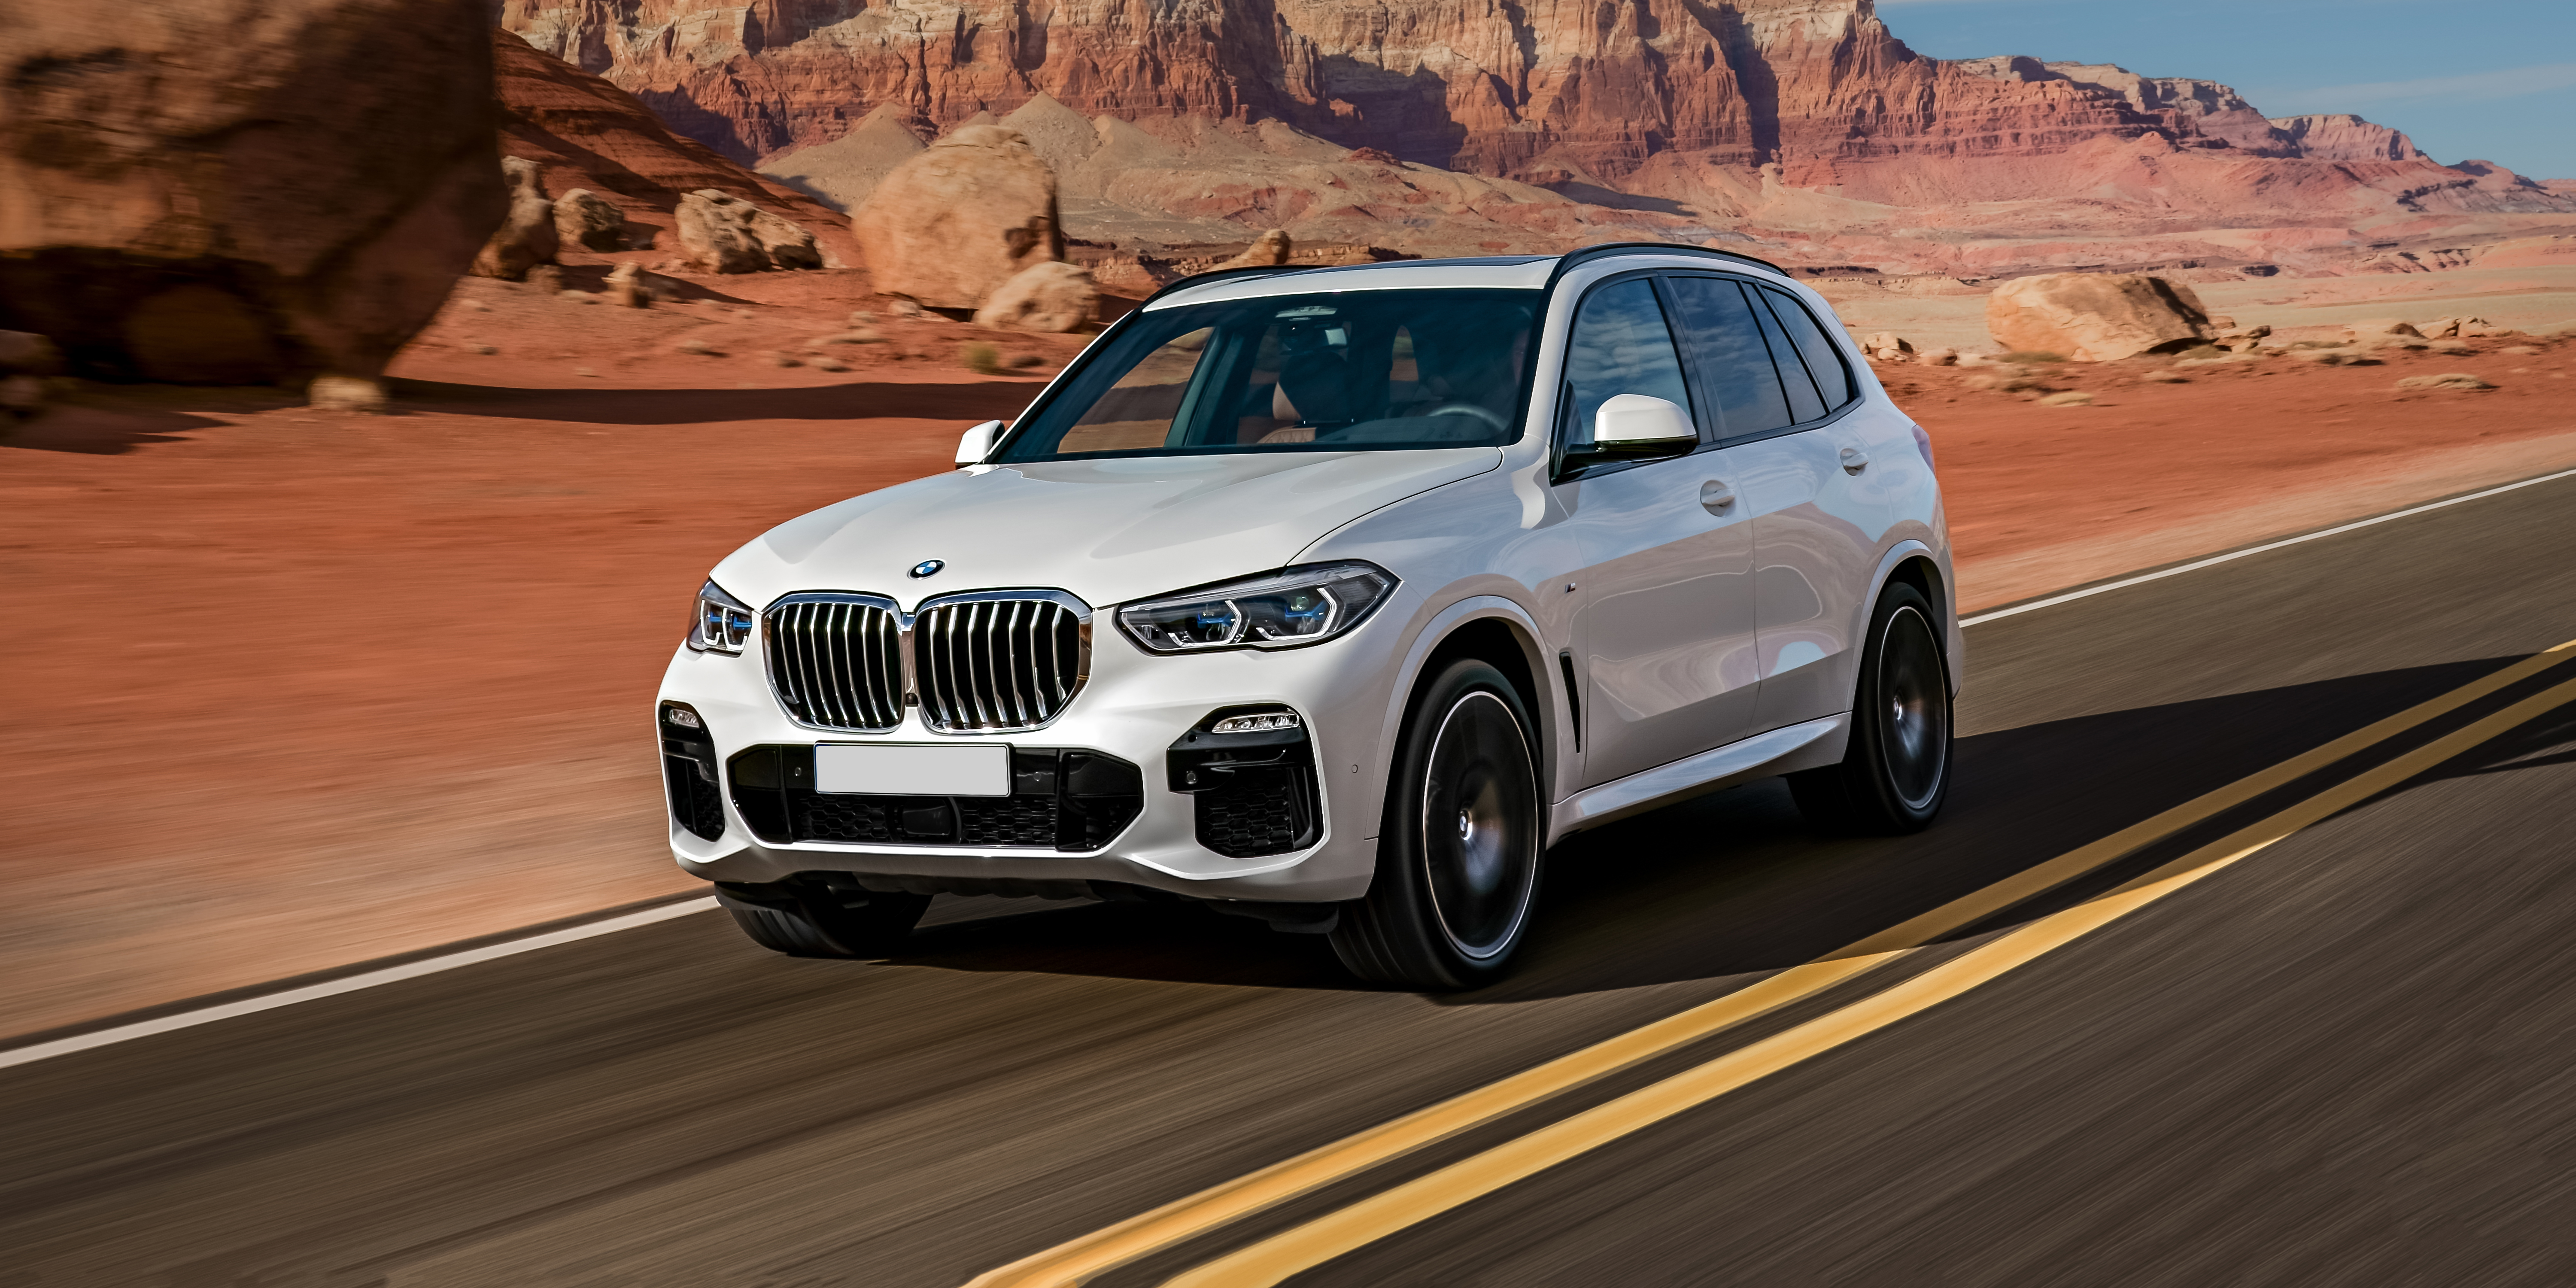 2018 BMW X5 And X5M Price, Specs And Release Date | Carwow